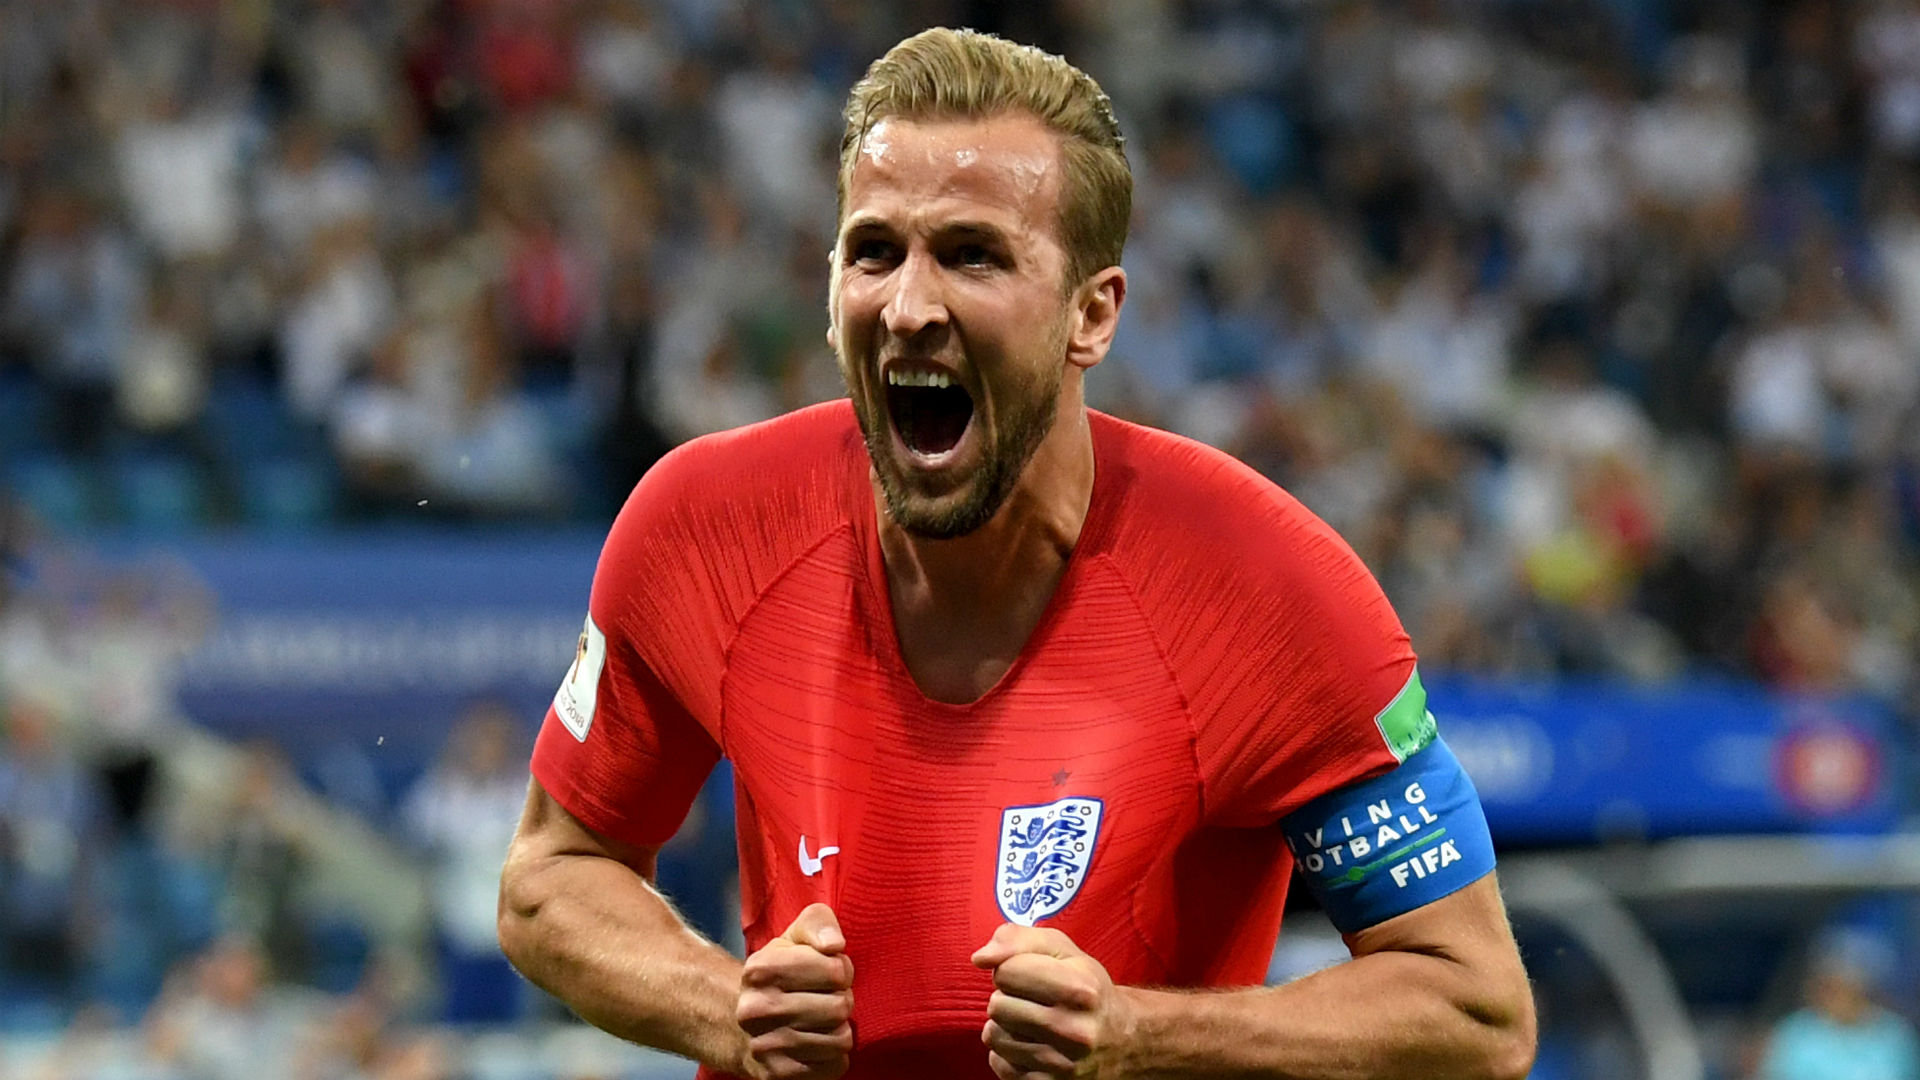 Harry Kane's pride after Tunisia win